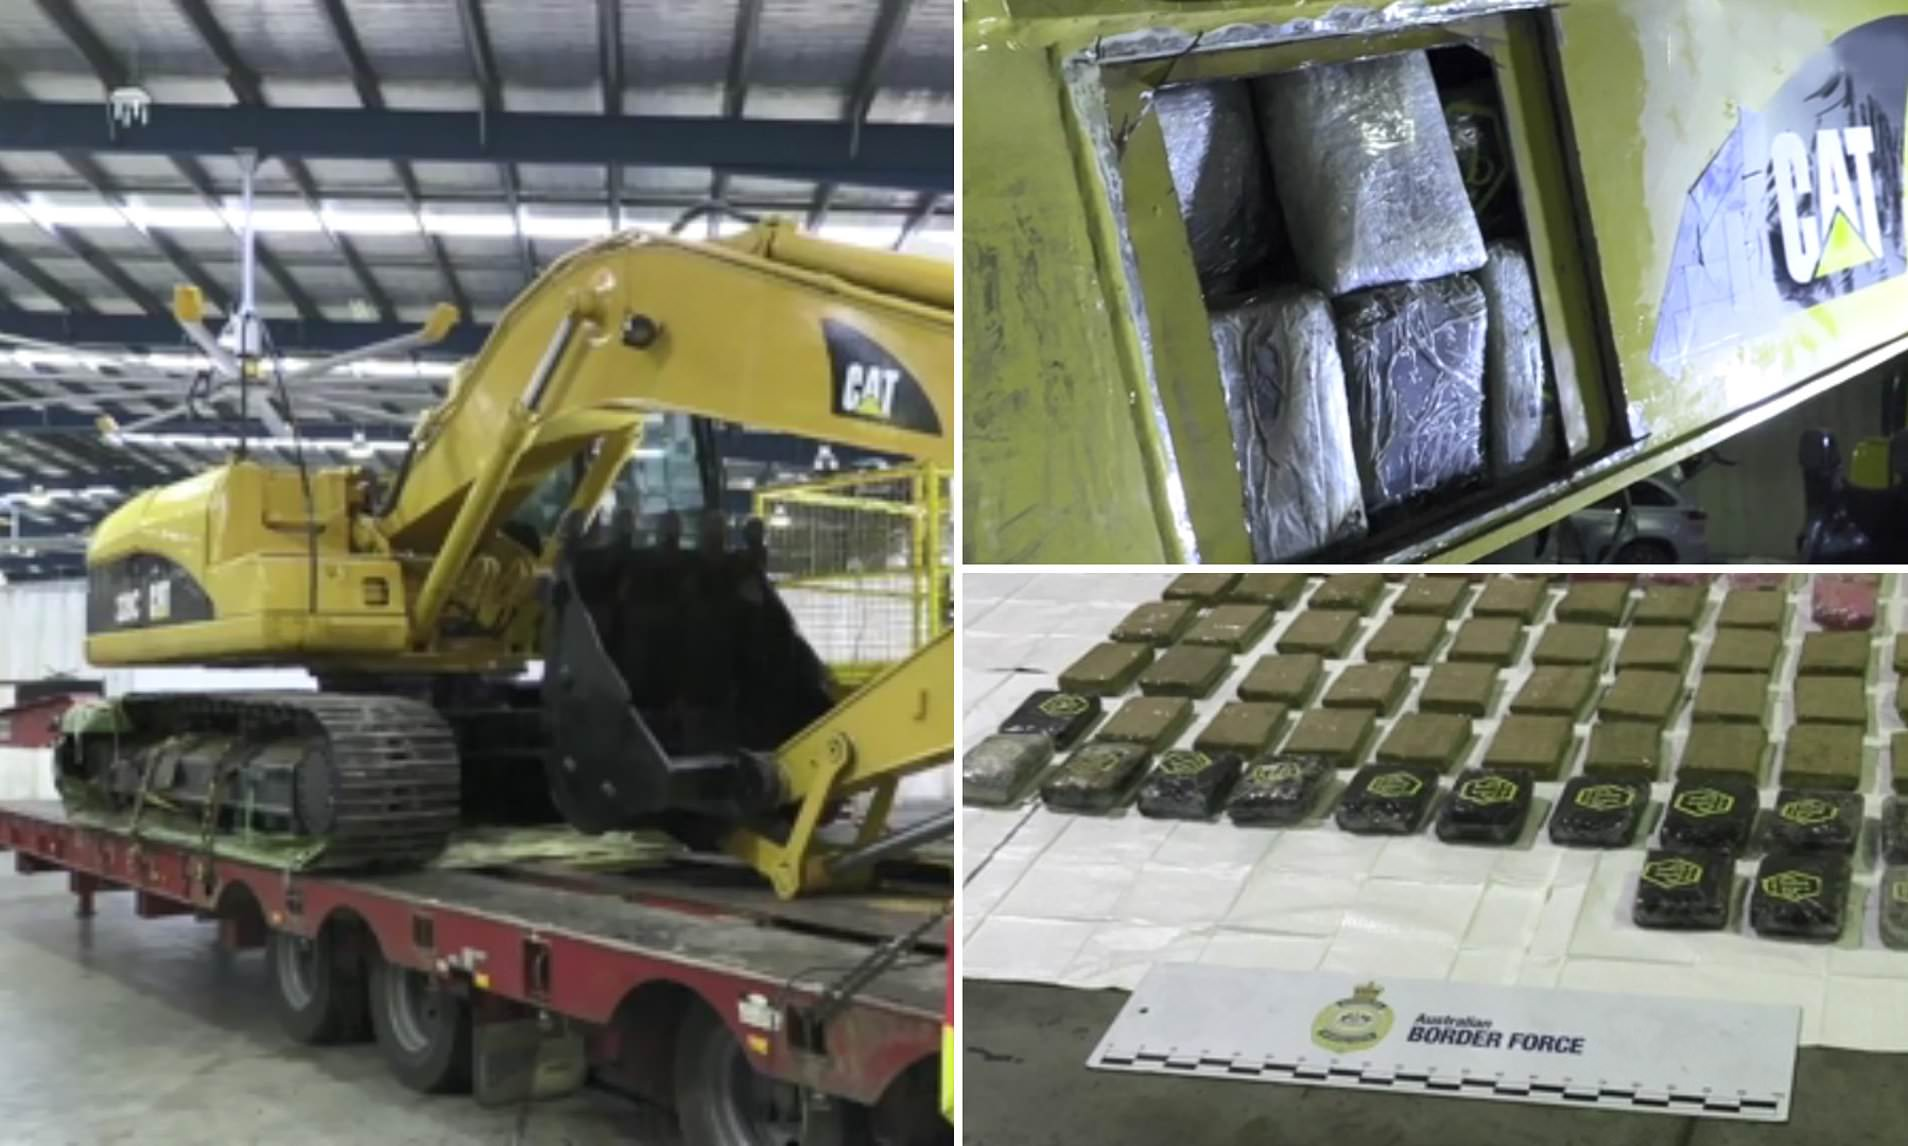 Over 800 Lbs. Of Cocaine Worth $140 Million Found Hidden In An Excavator